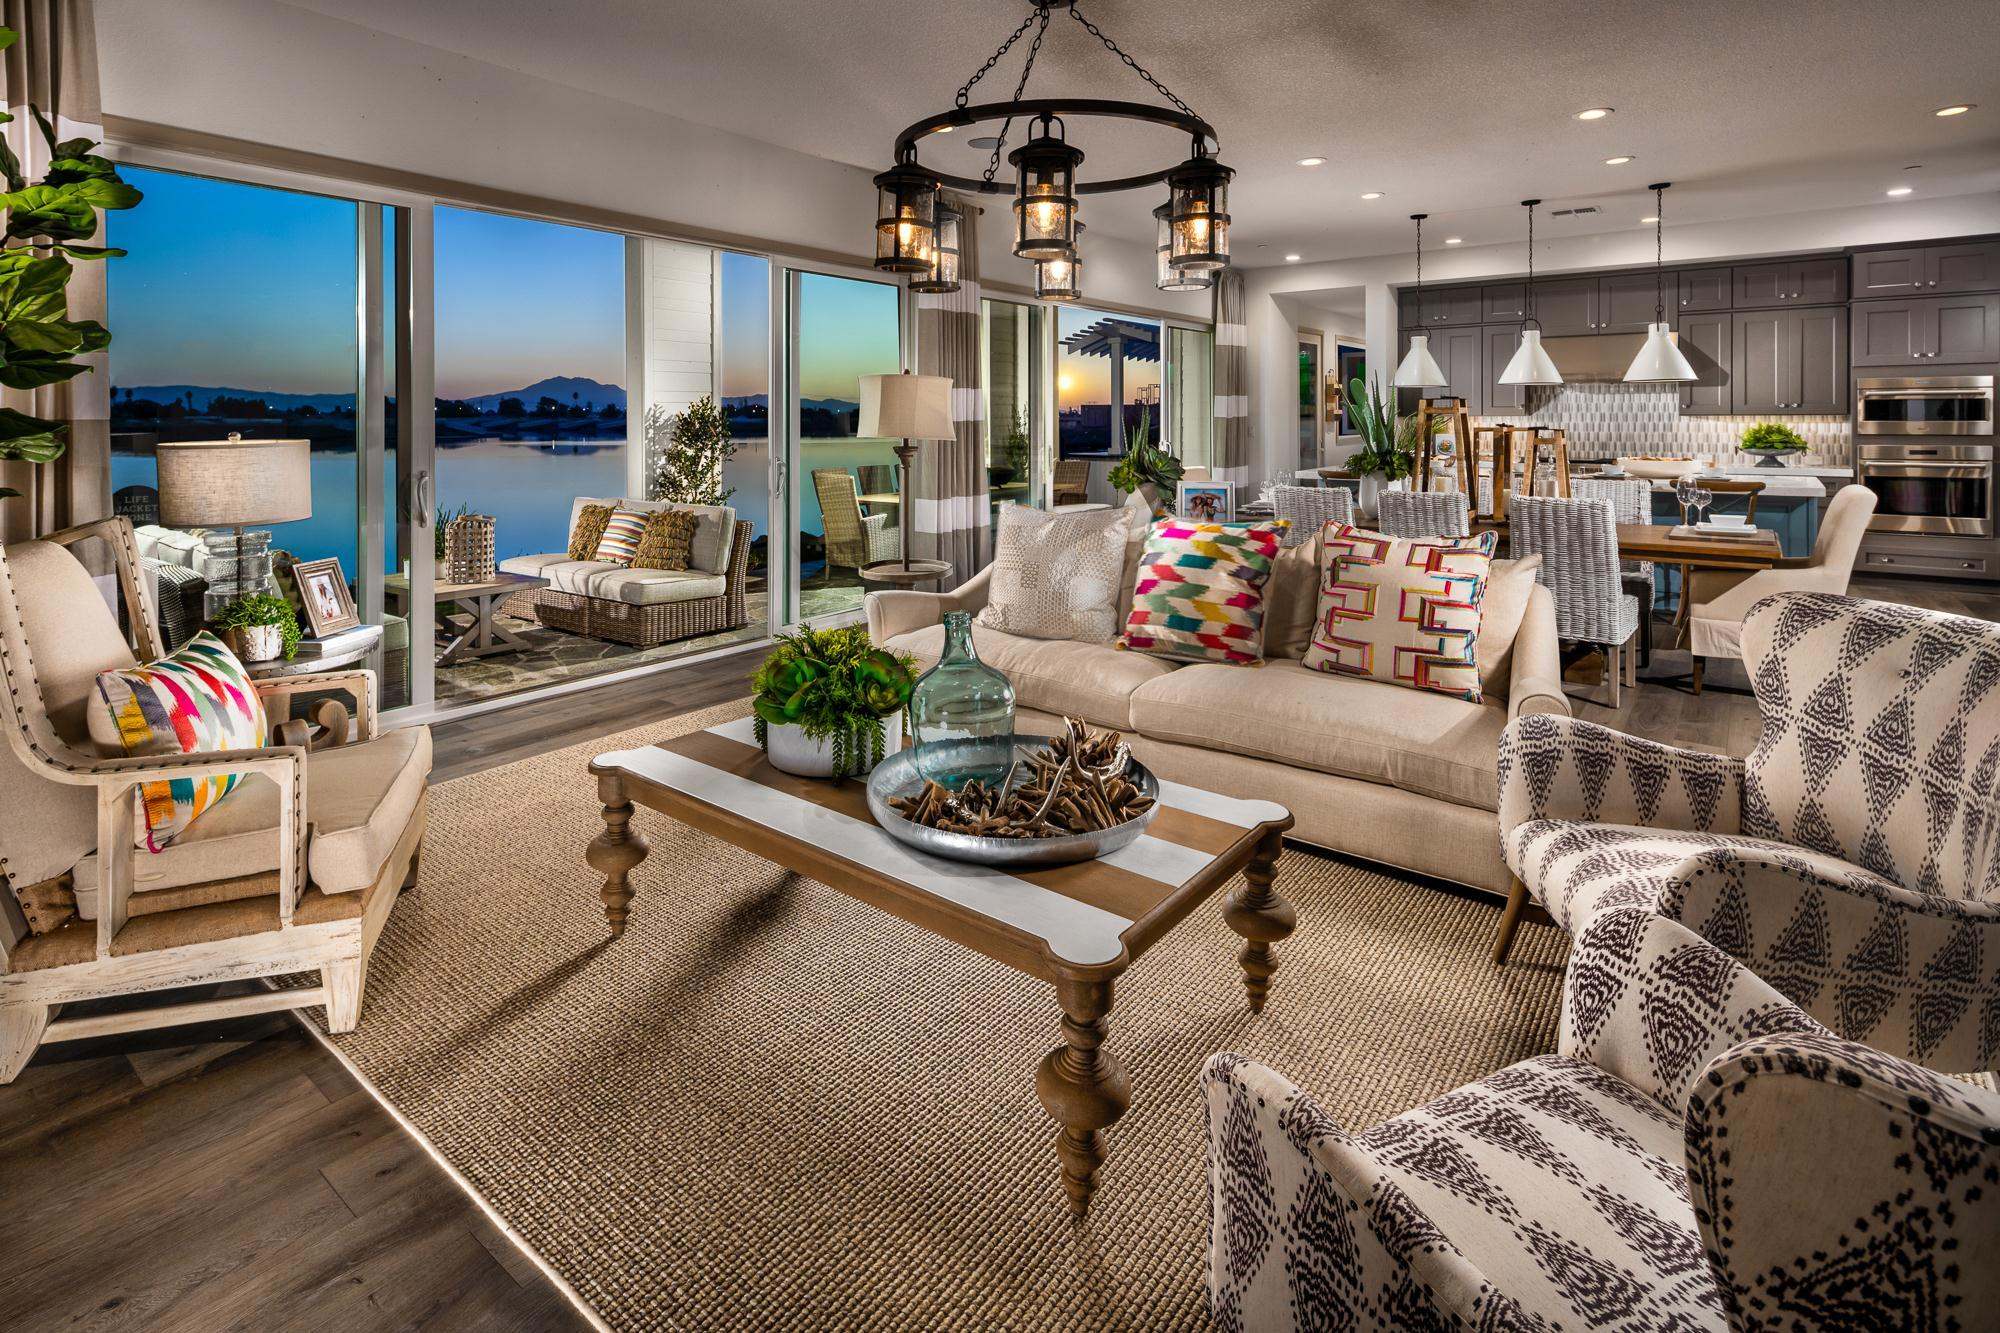 Living Area featured in The Shoreline By Davidson Communities in Oakland-Alameda, CA